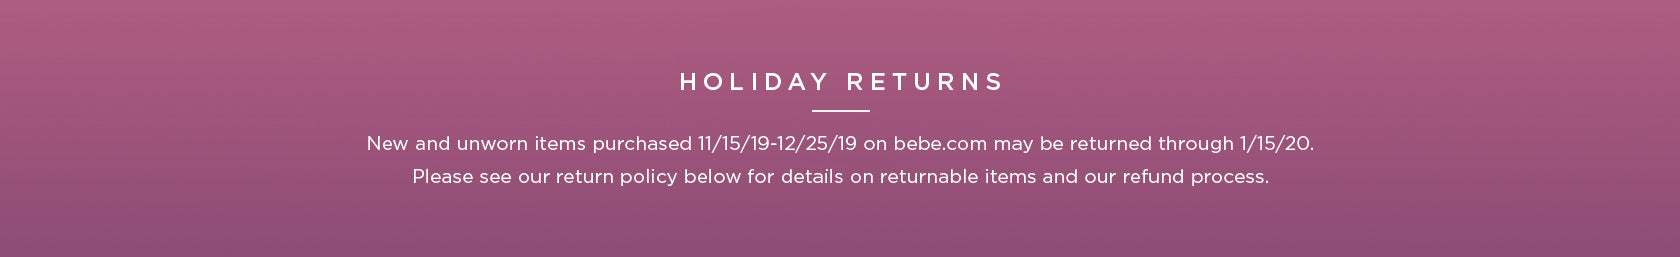 holiday returns